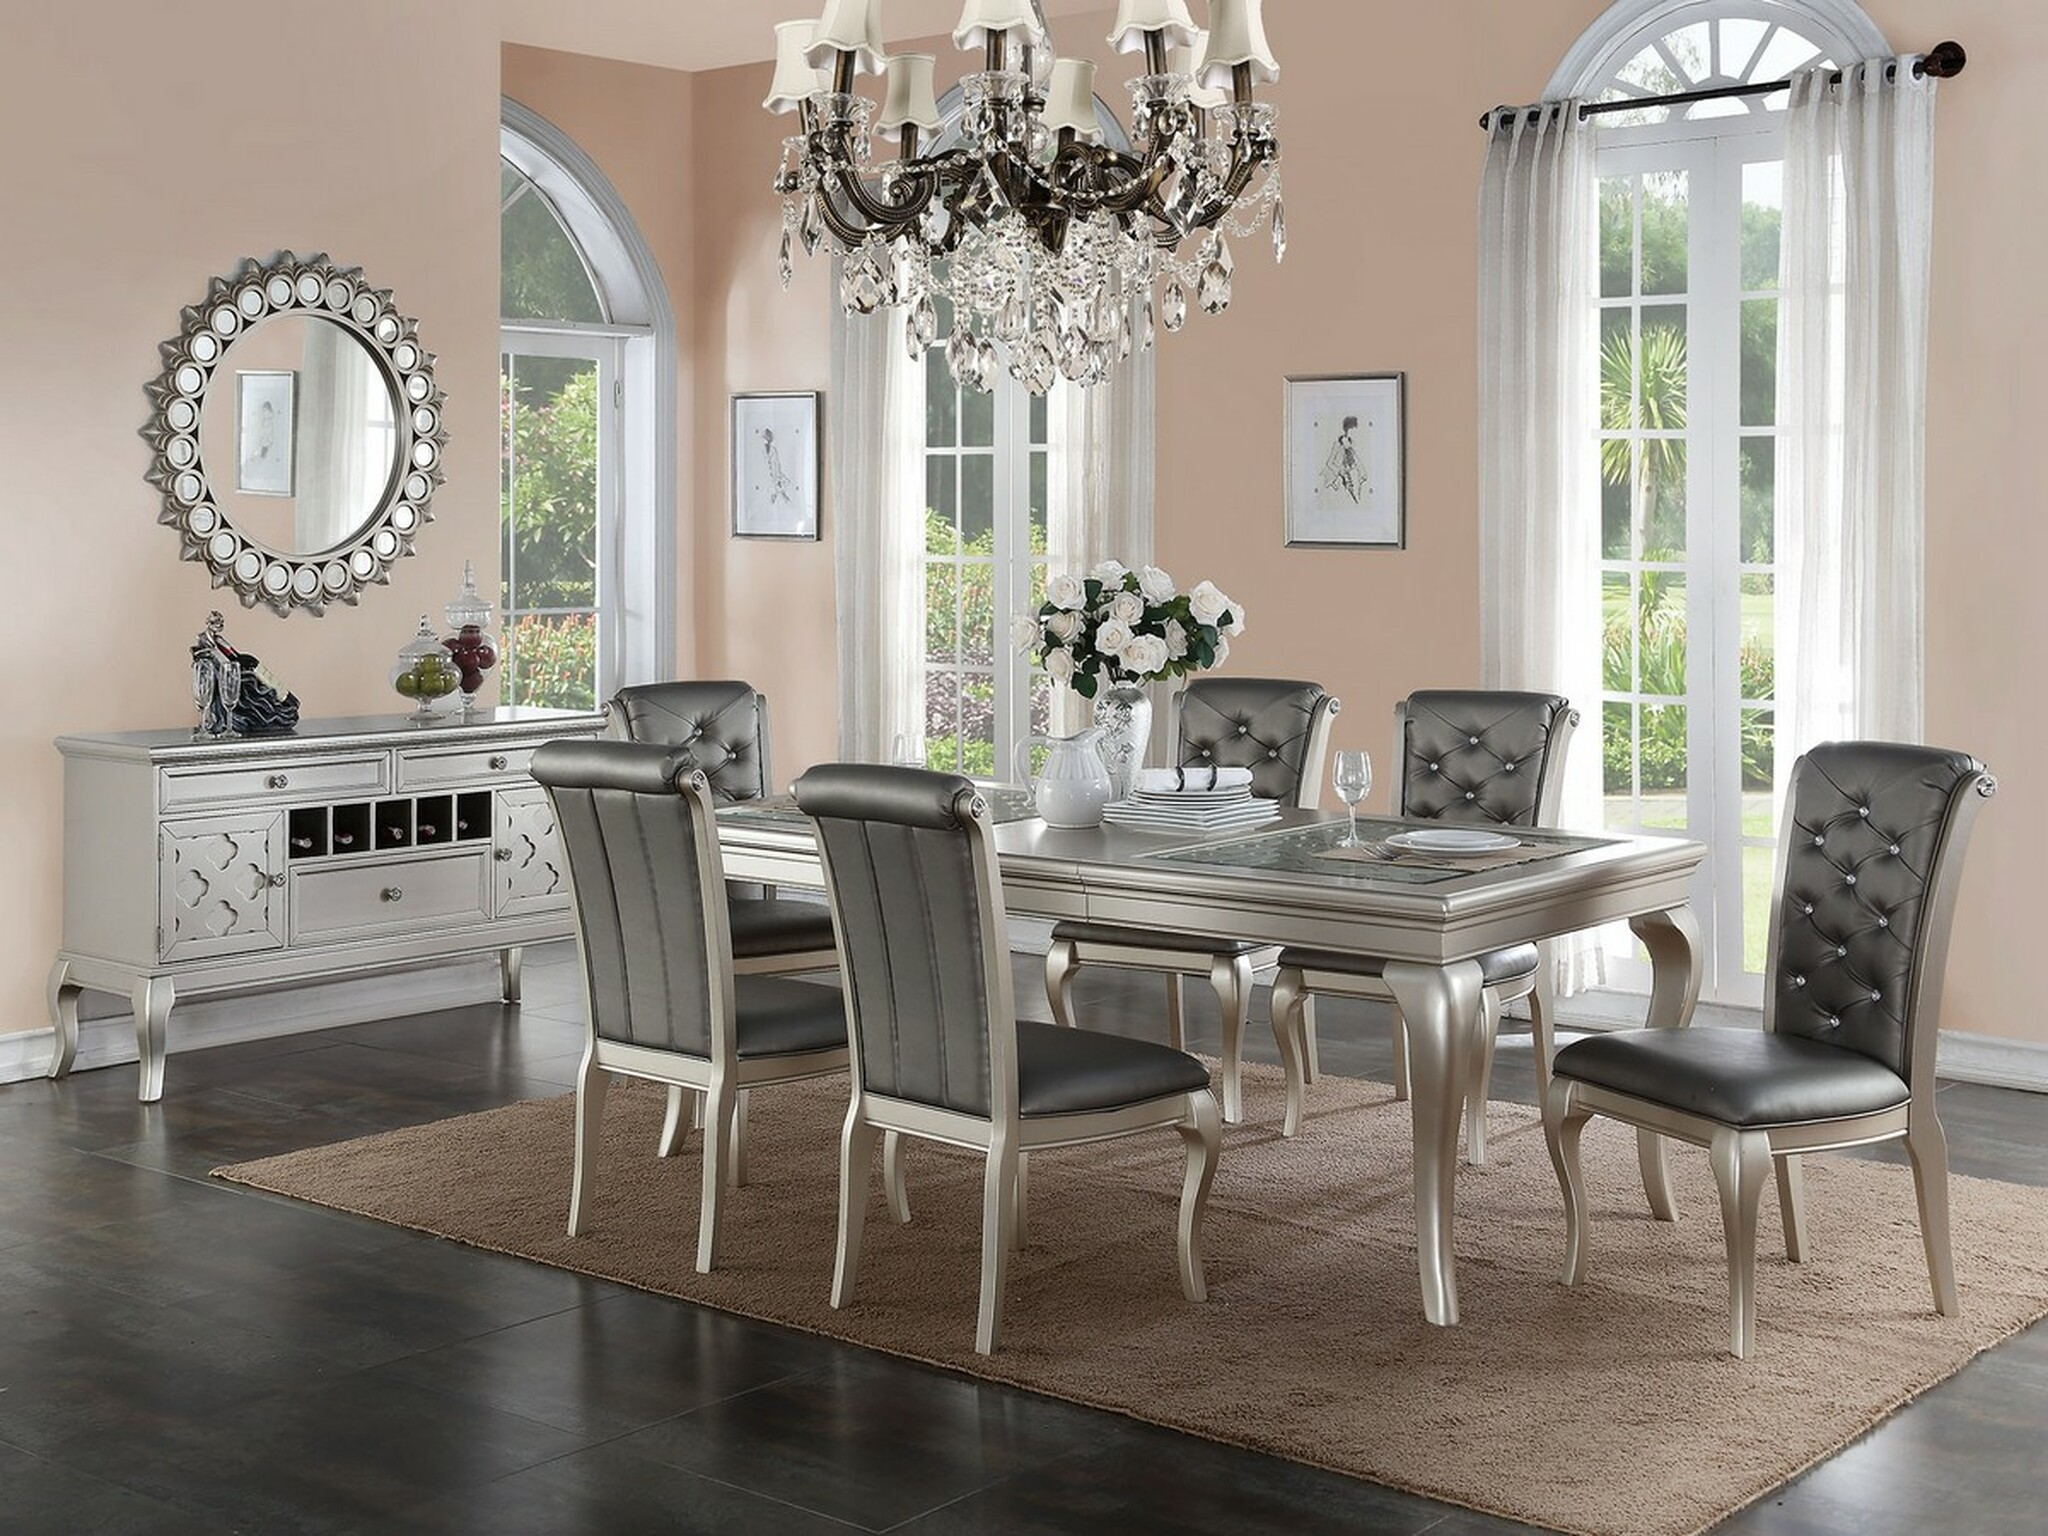 KASSA MALL HOME FURNITURE -  5 PIECE FORMAL DINING TABLE SET